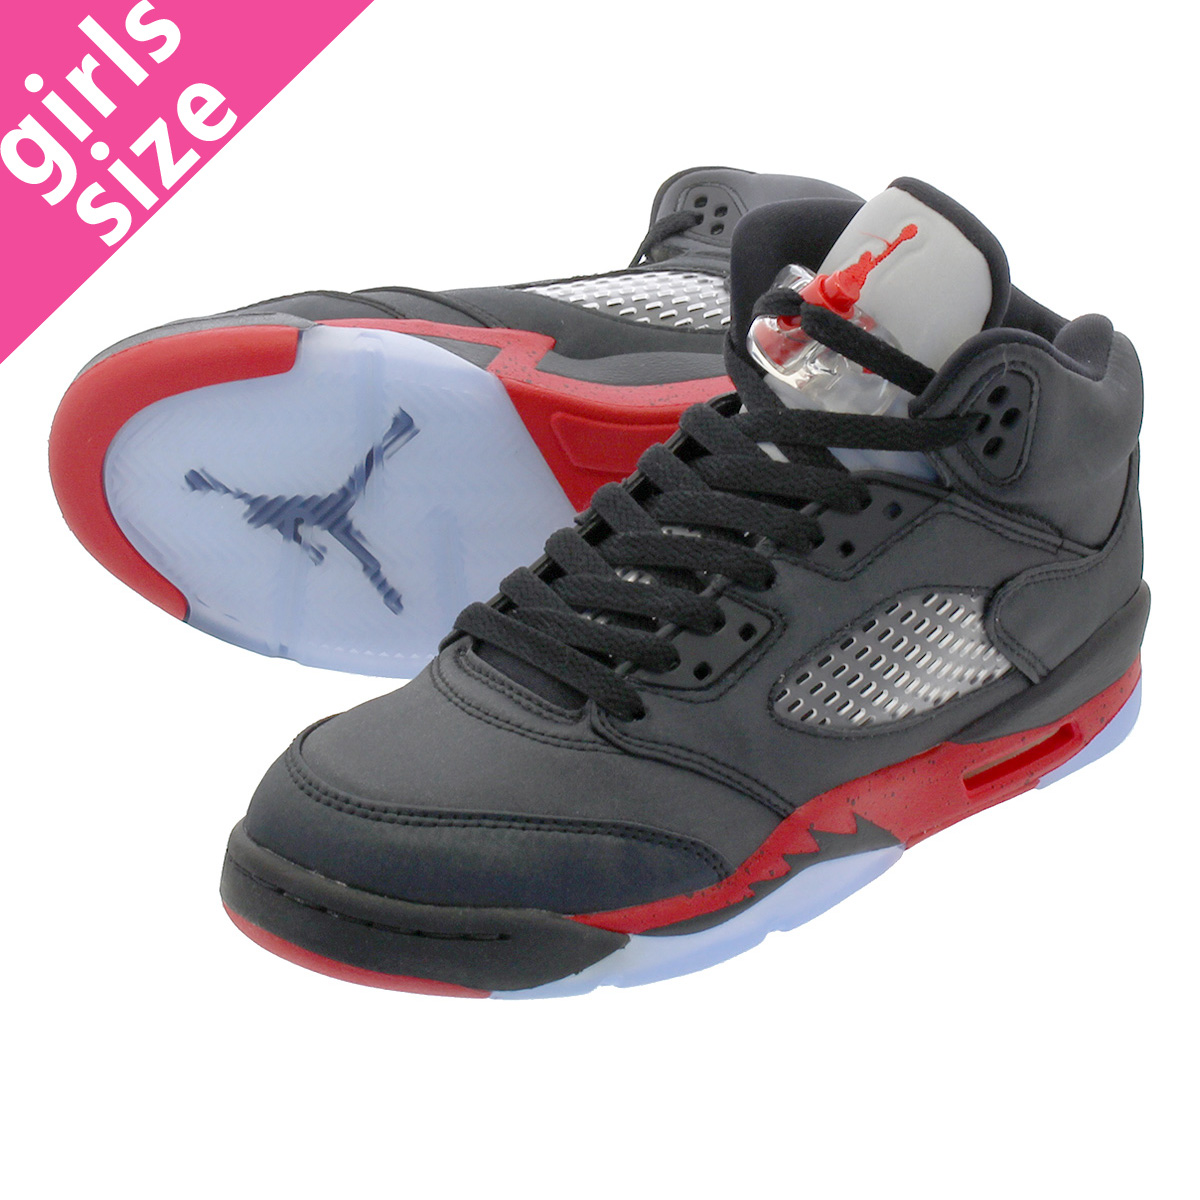 the latest d1ecf e290b NIKE AIR JORDAN 5 RETRO GS Nike Air Jordan 5 nostalgic GS BLACK UNIVERSITY  RED 440,888-006